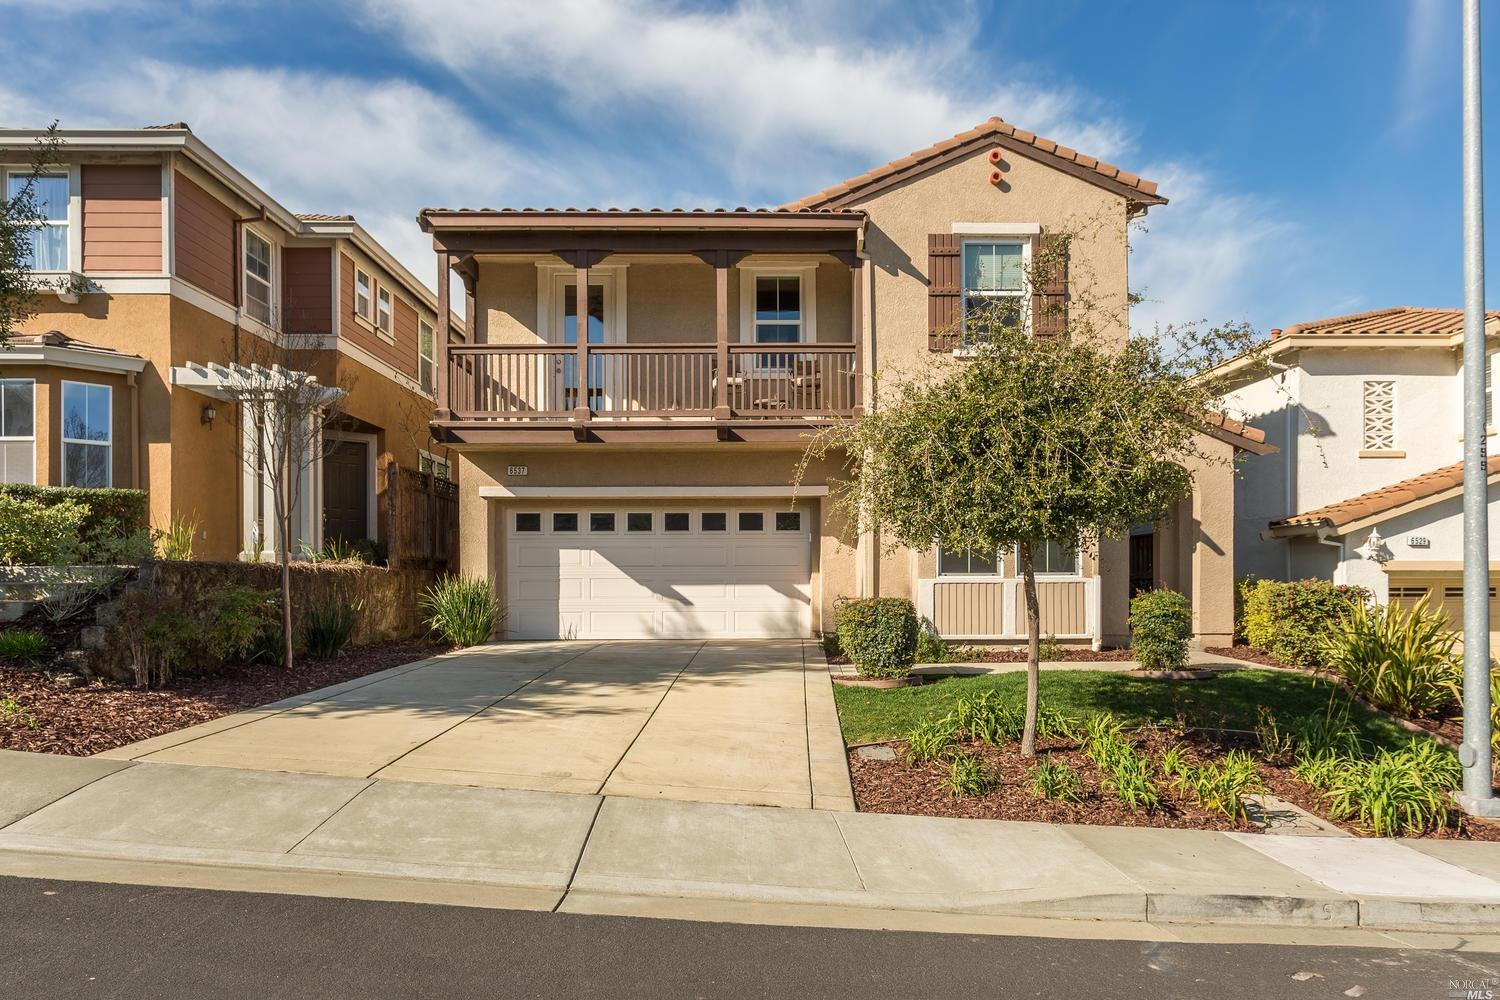 Sell My House Fast In Vallejo